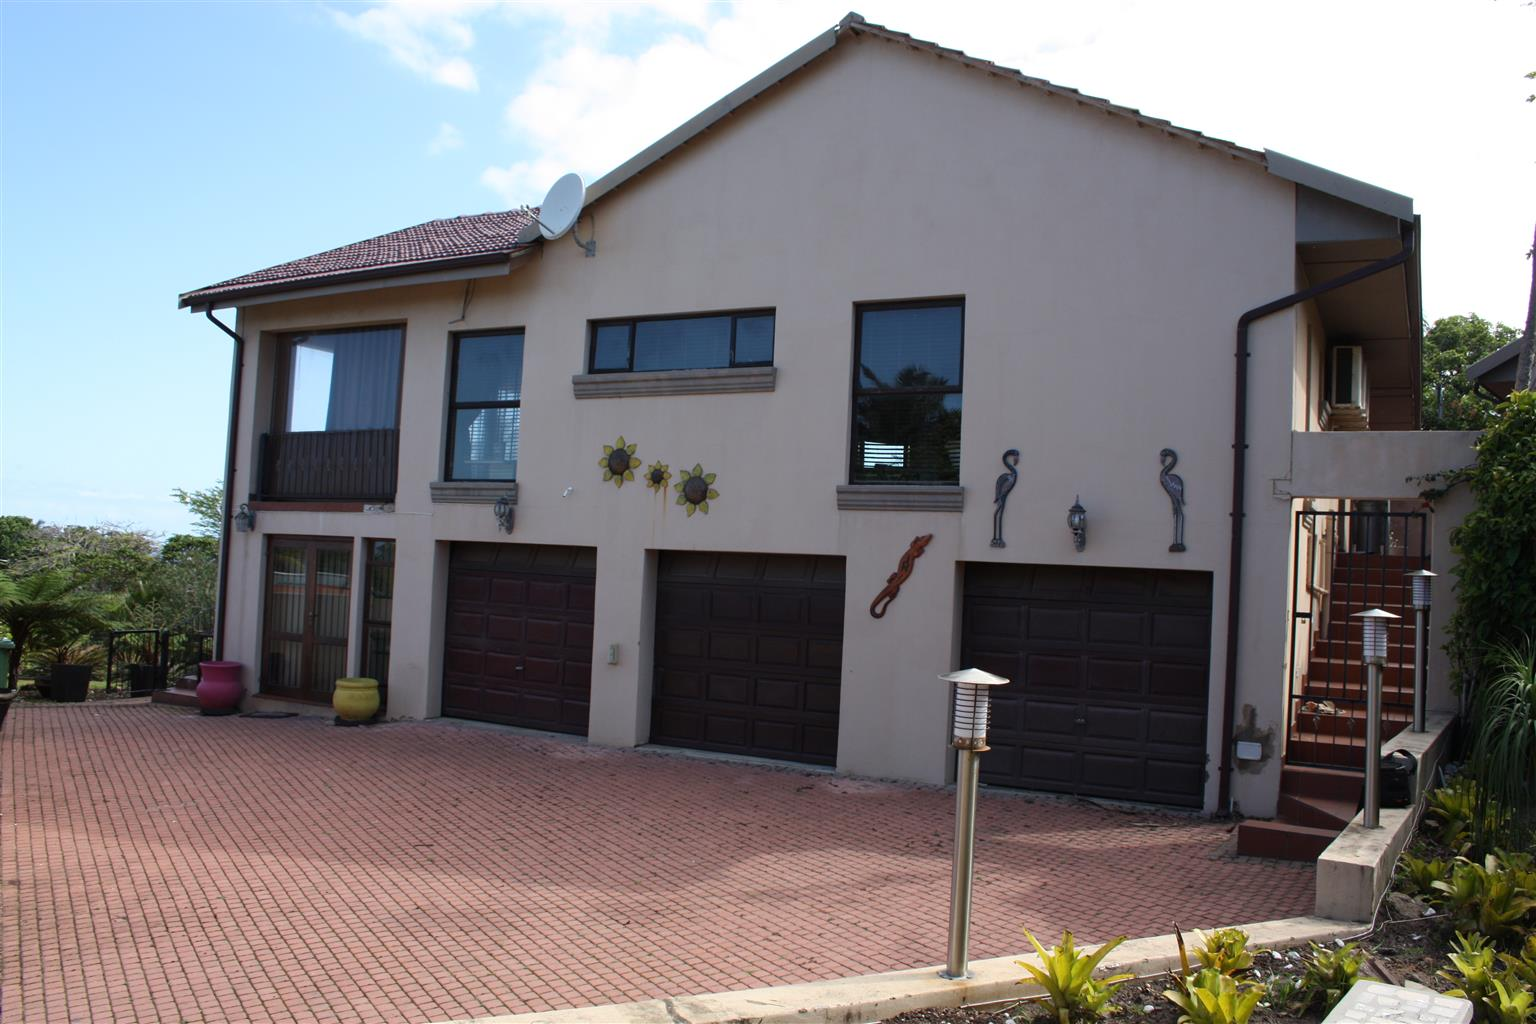 UVONGO LARGE 10 SLEEPER HOLIDAY HOME FOR RENT: WALK TO BEACH BEAUTIFUL SEA VIEWS( R7000 PER DAY)